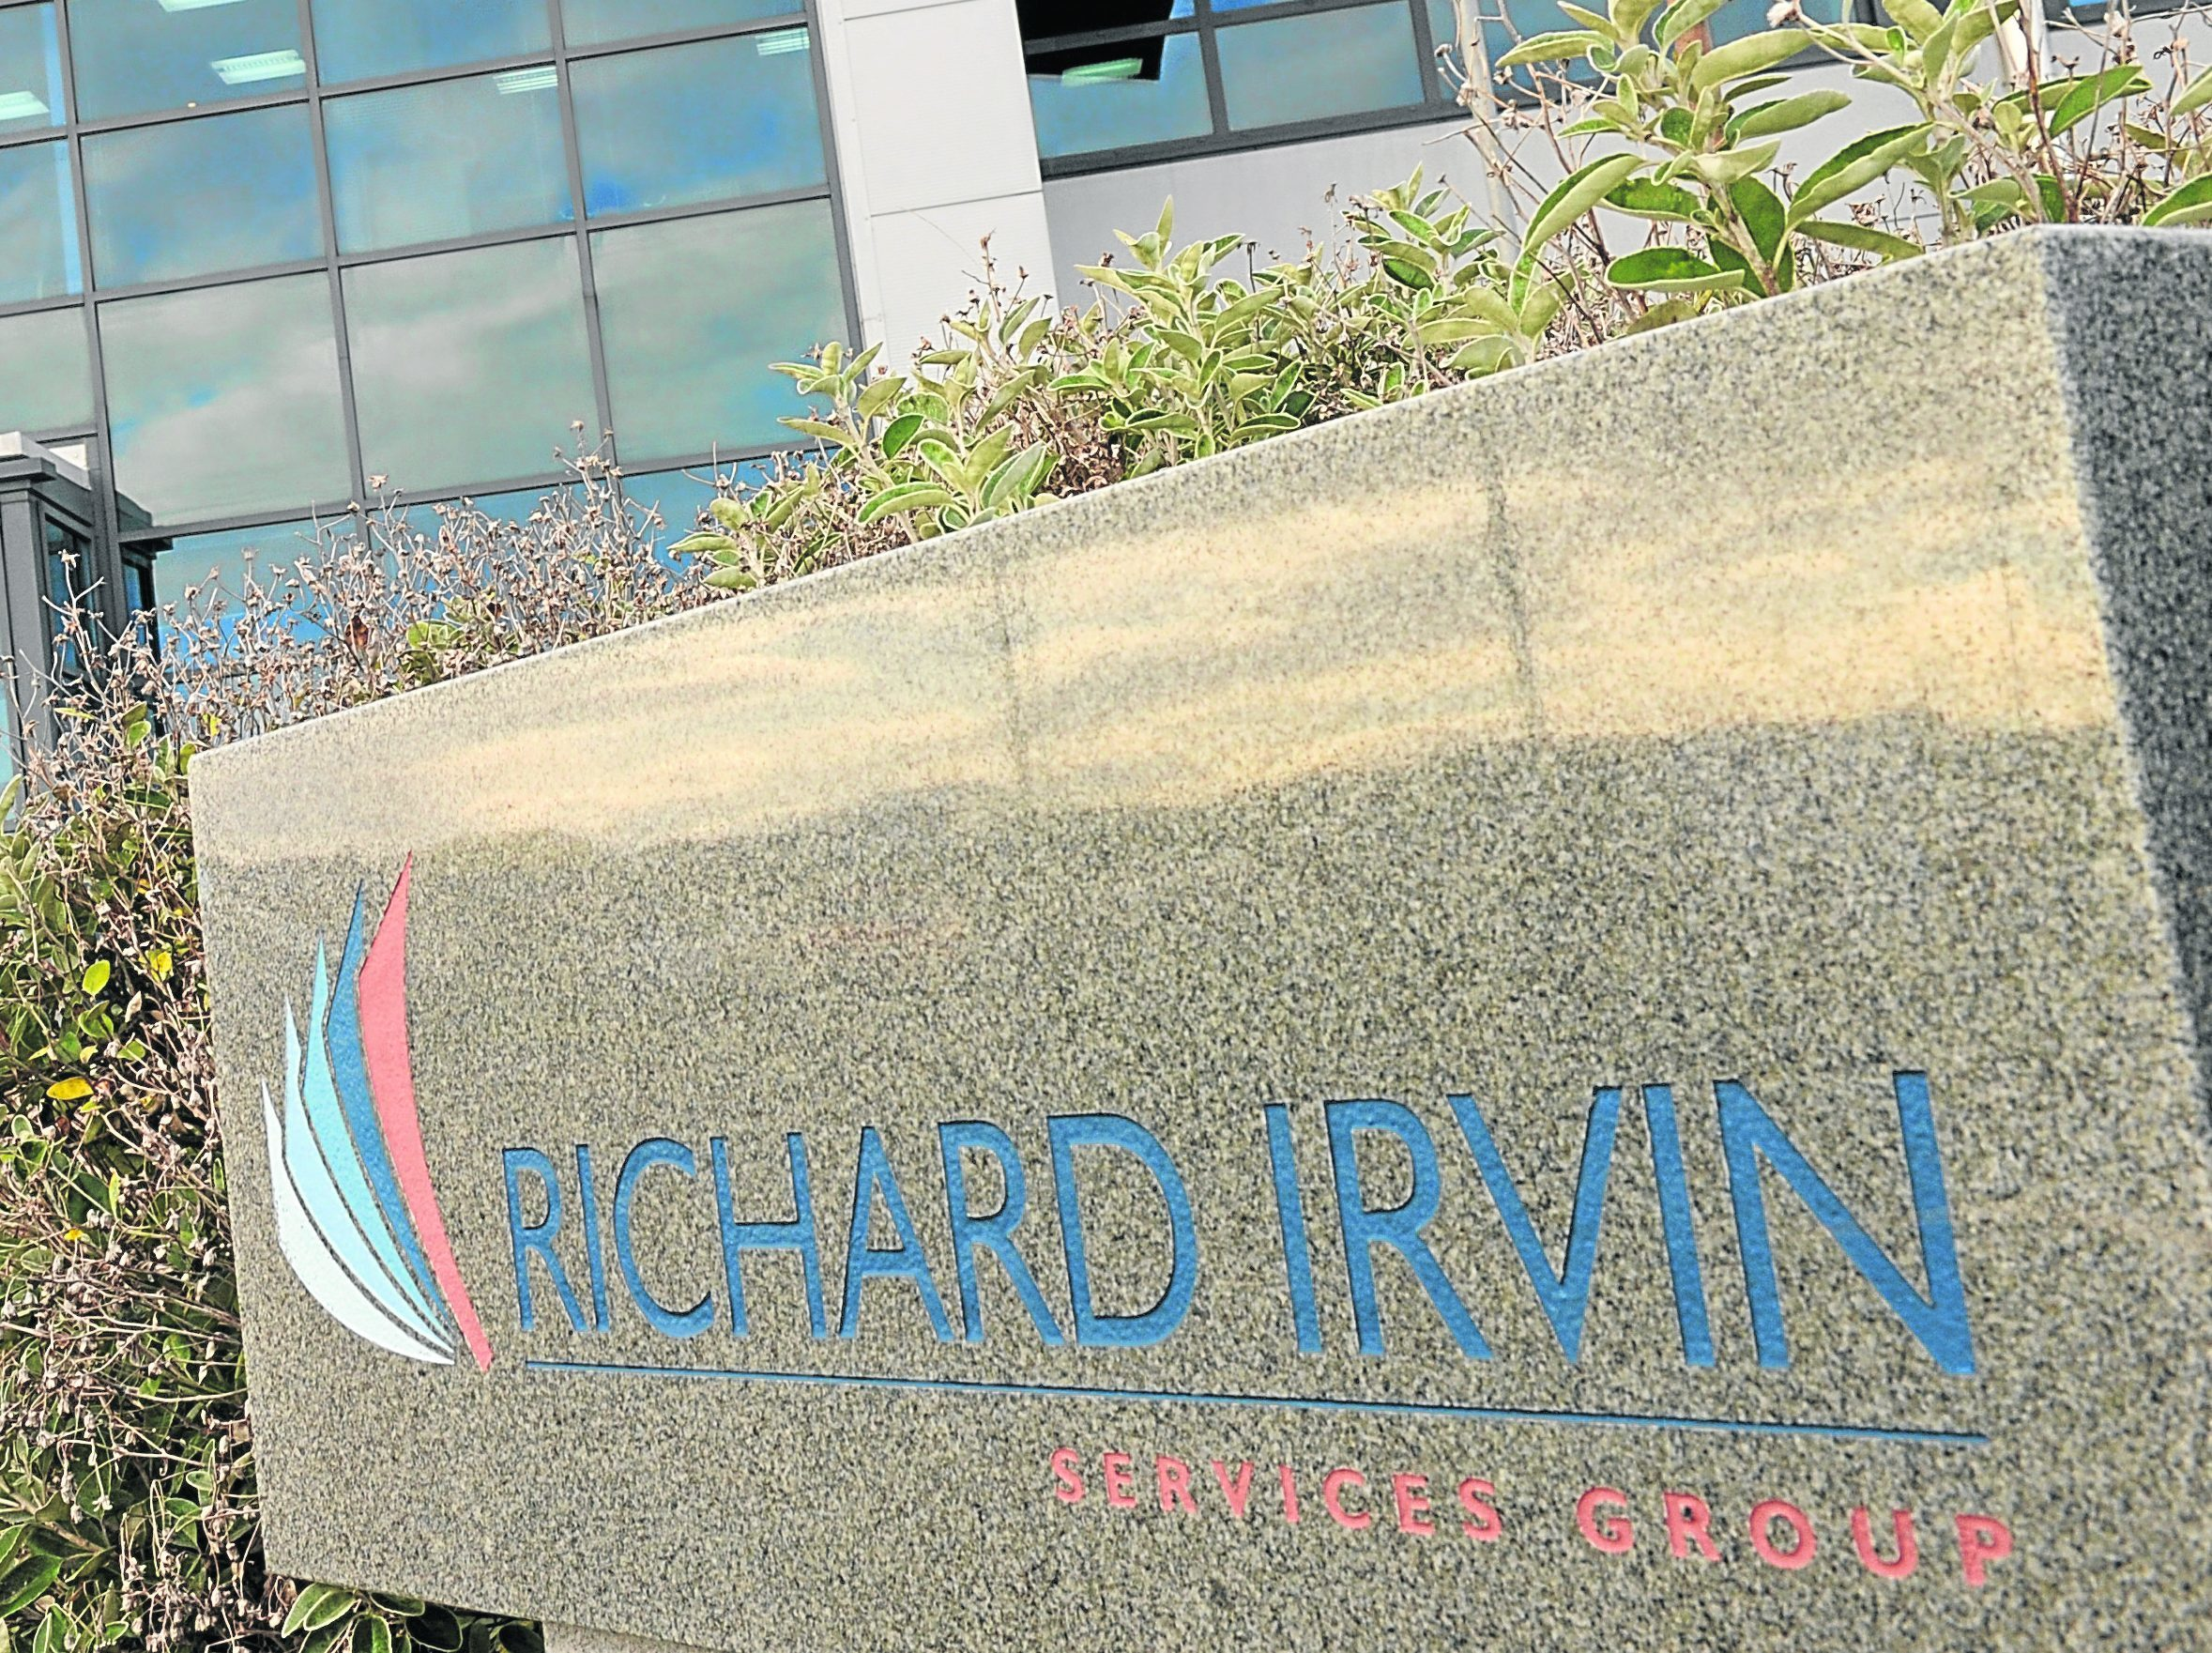 Richard Irvin Energy Solutions is based in Aberdeen